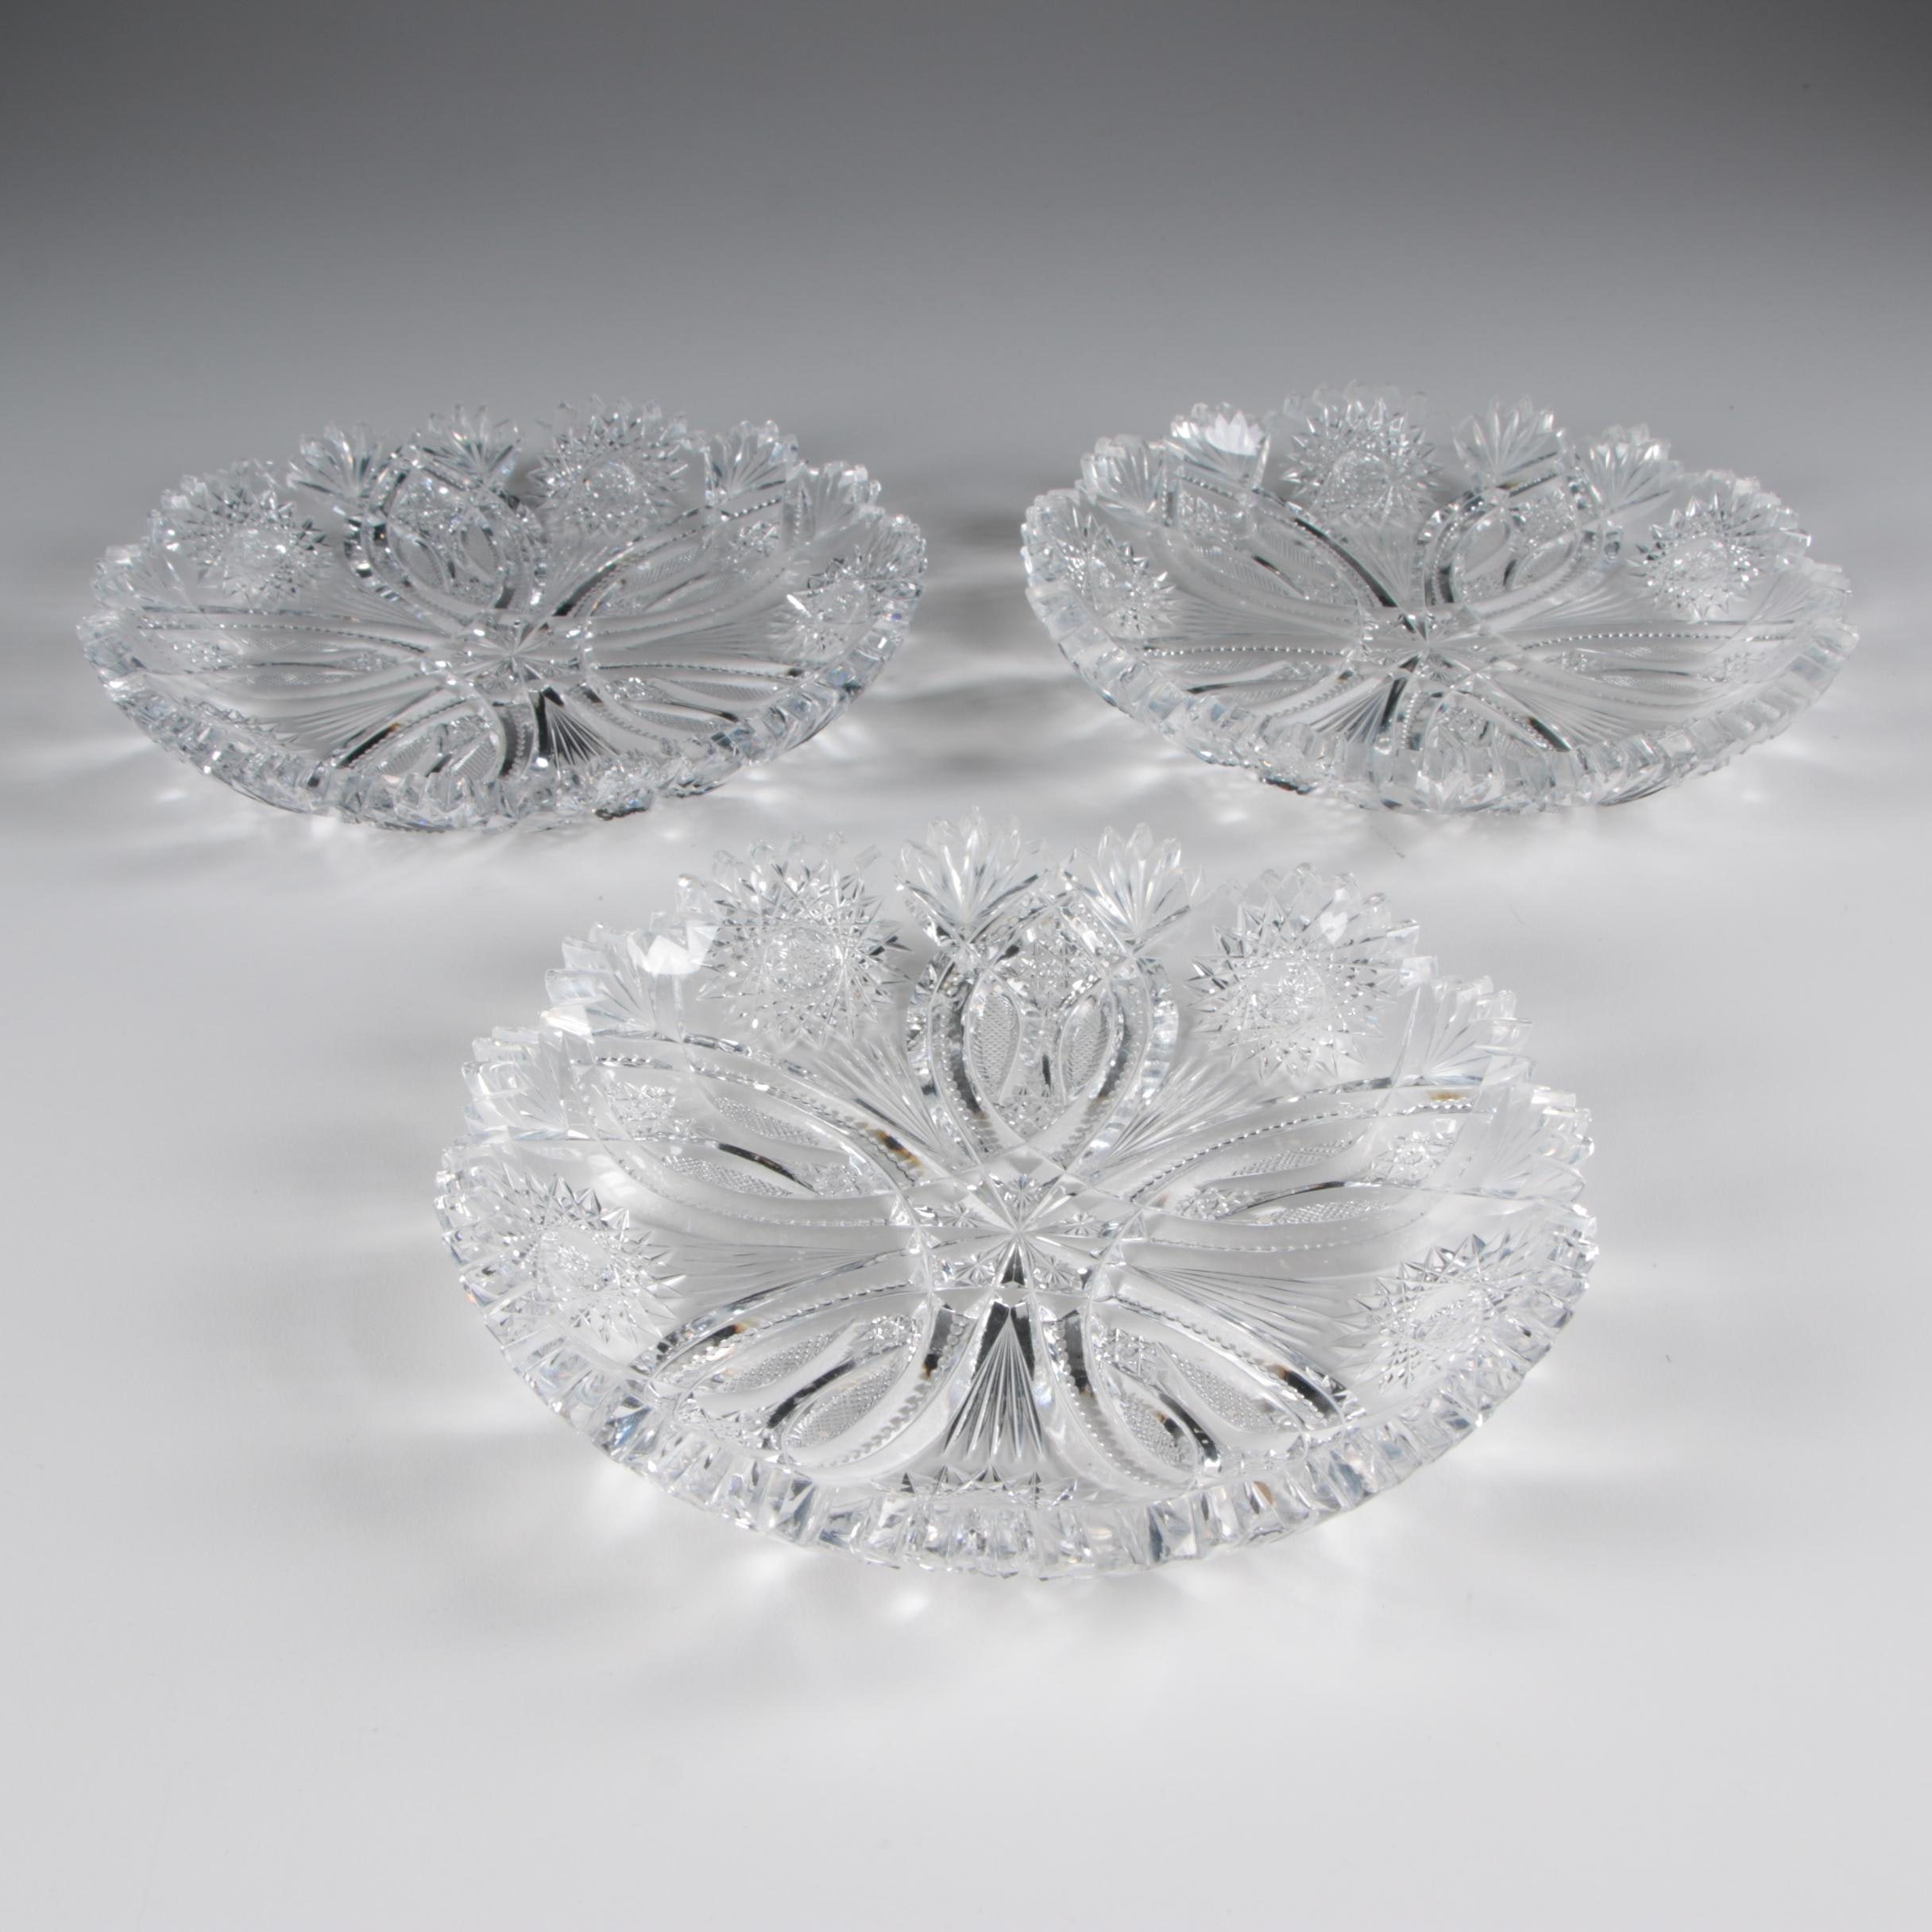 American Brilliant Cut Glass Bowls, Late 19th/Early 20th Century